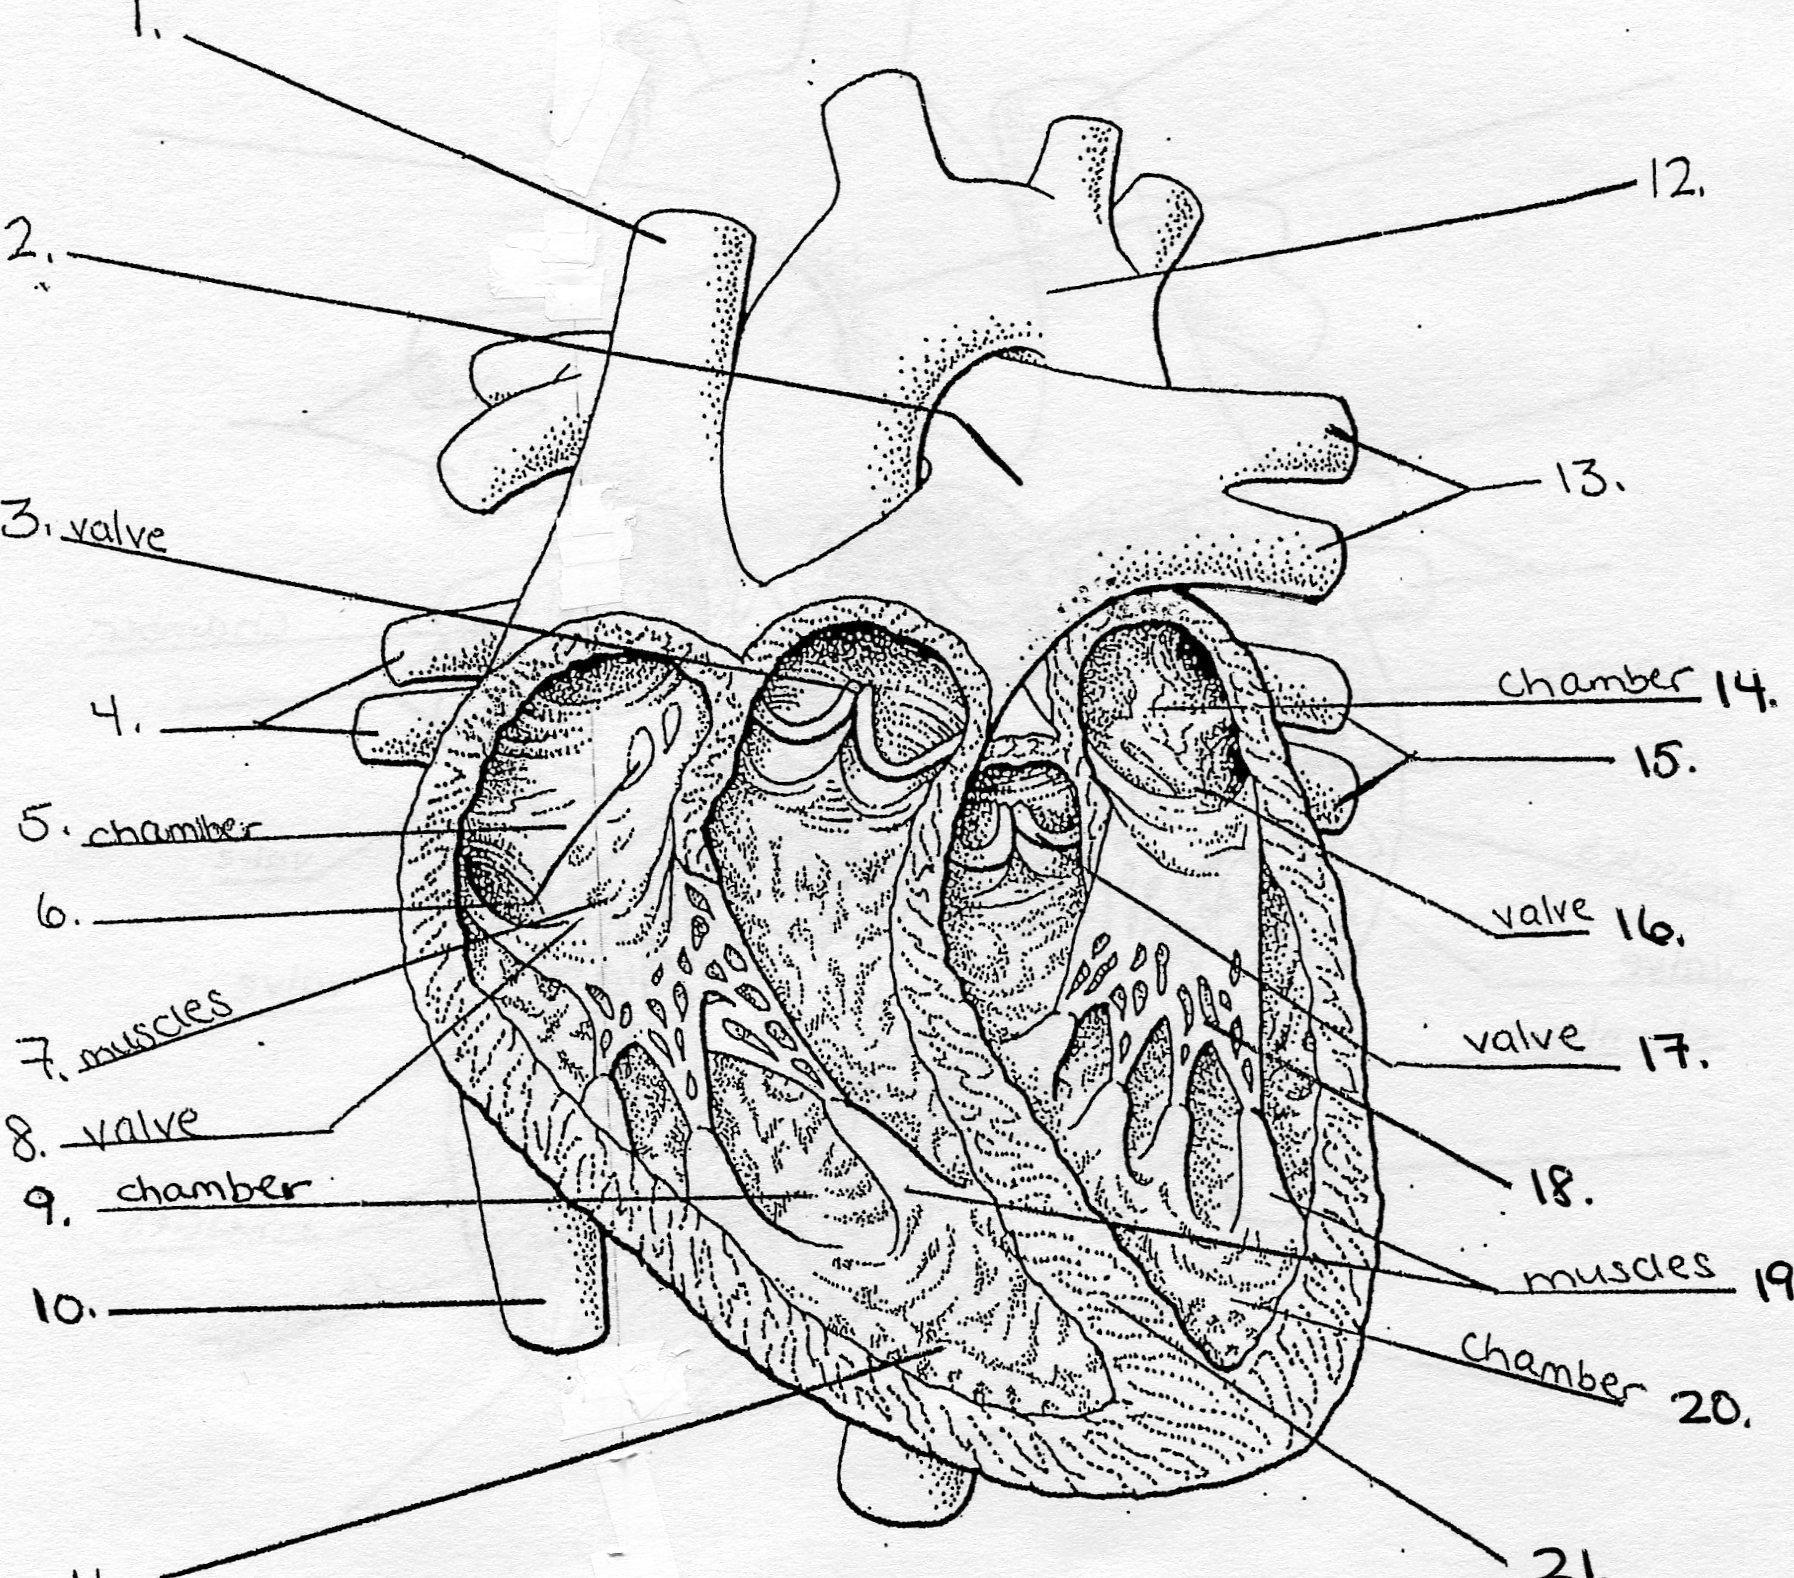 Fetal Pig Heart Diagram Unlabeled - Free Vehicle Wiring Diagrams •